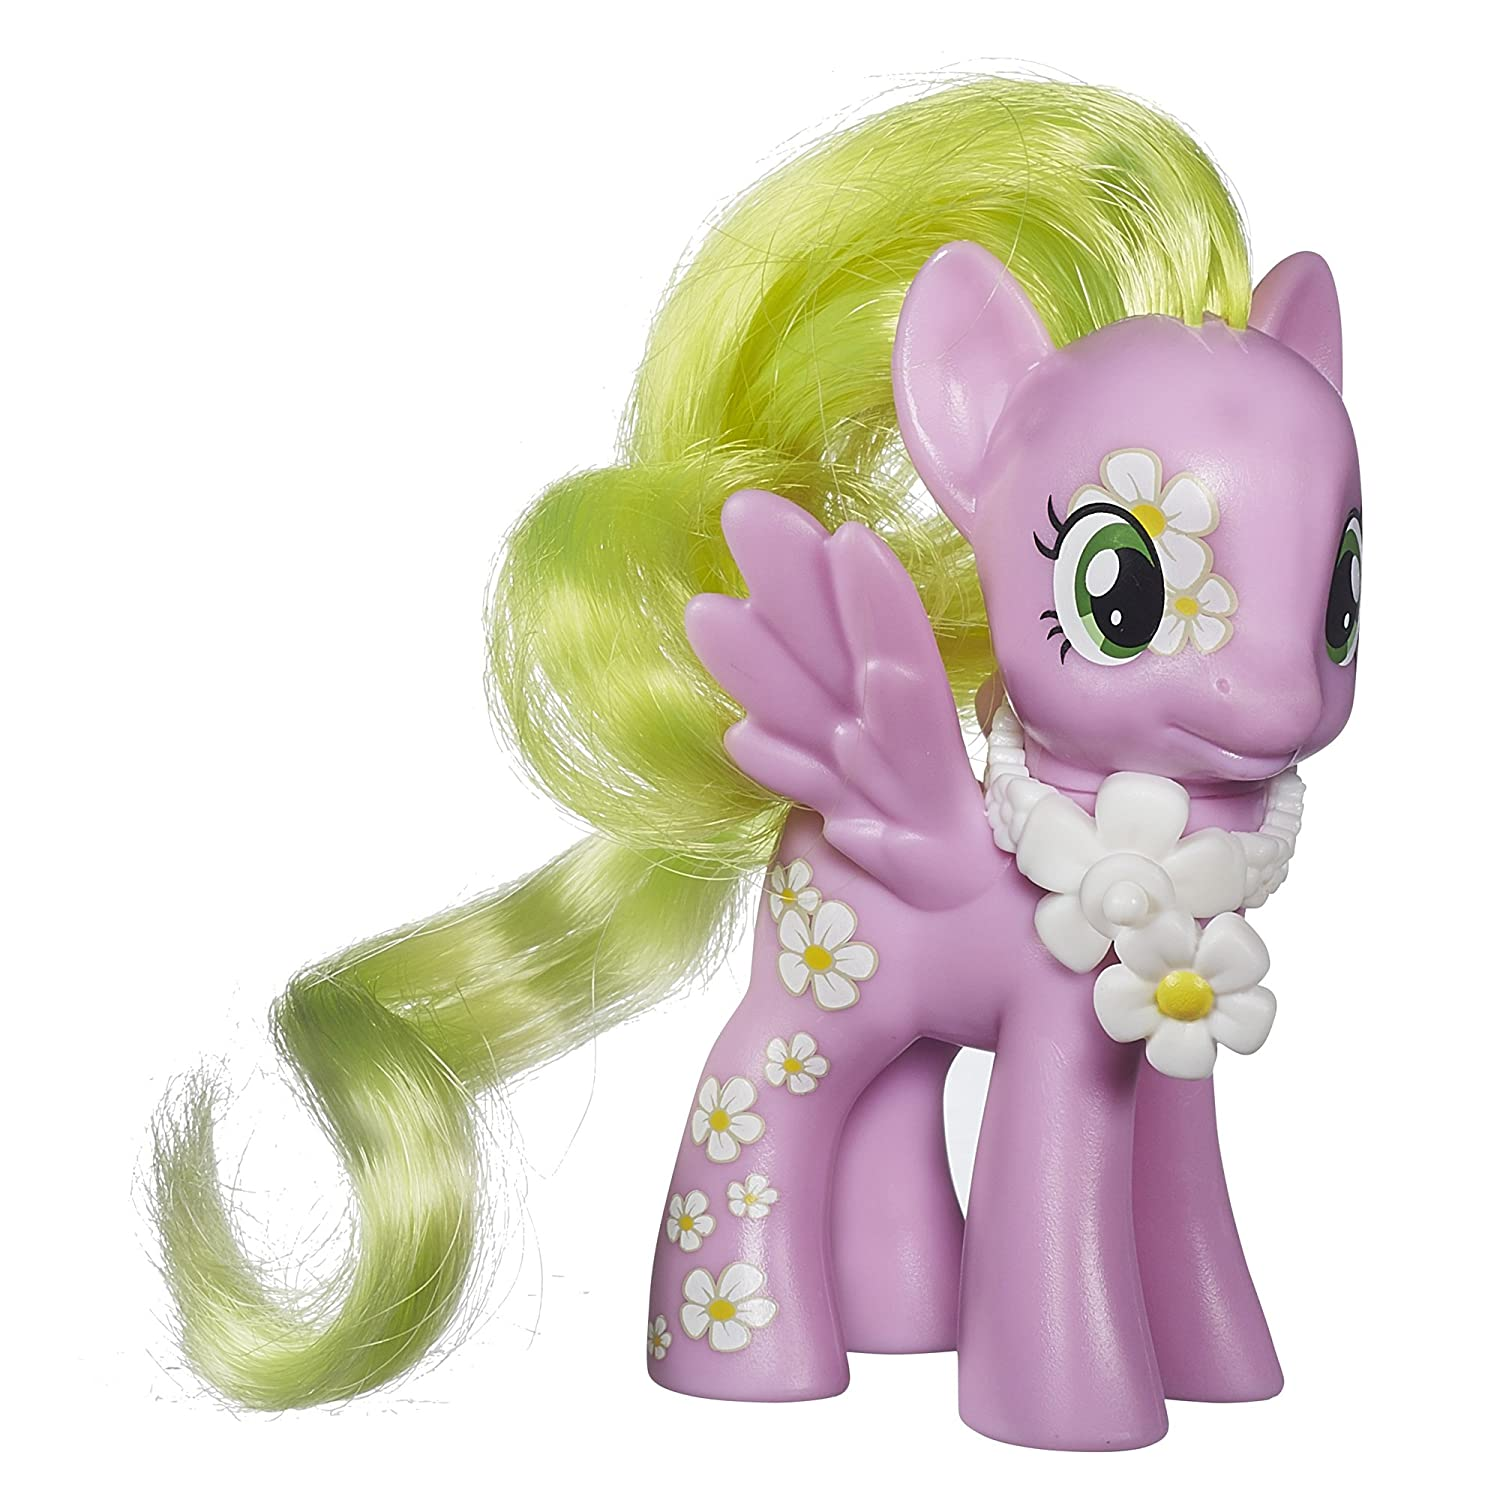 My Little Pony Cutie Mark Magic Flower Wishes Figure Hasbro B1190AS0